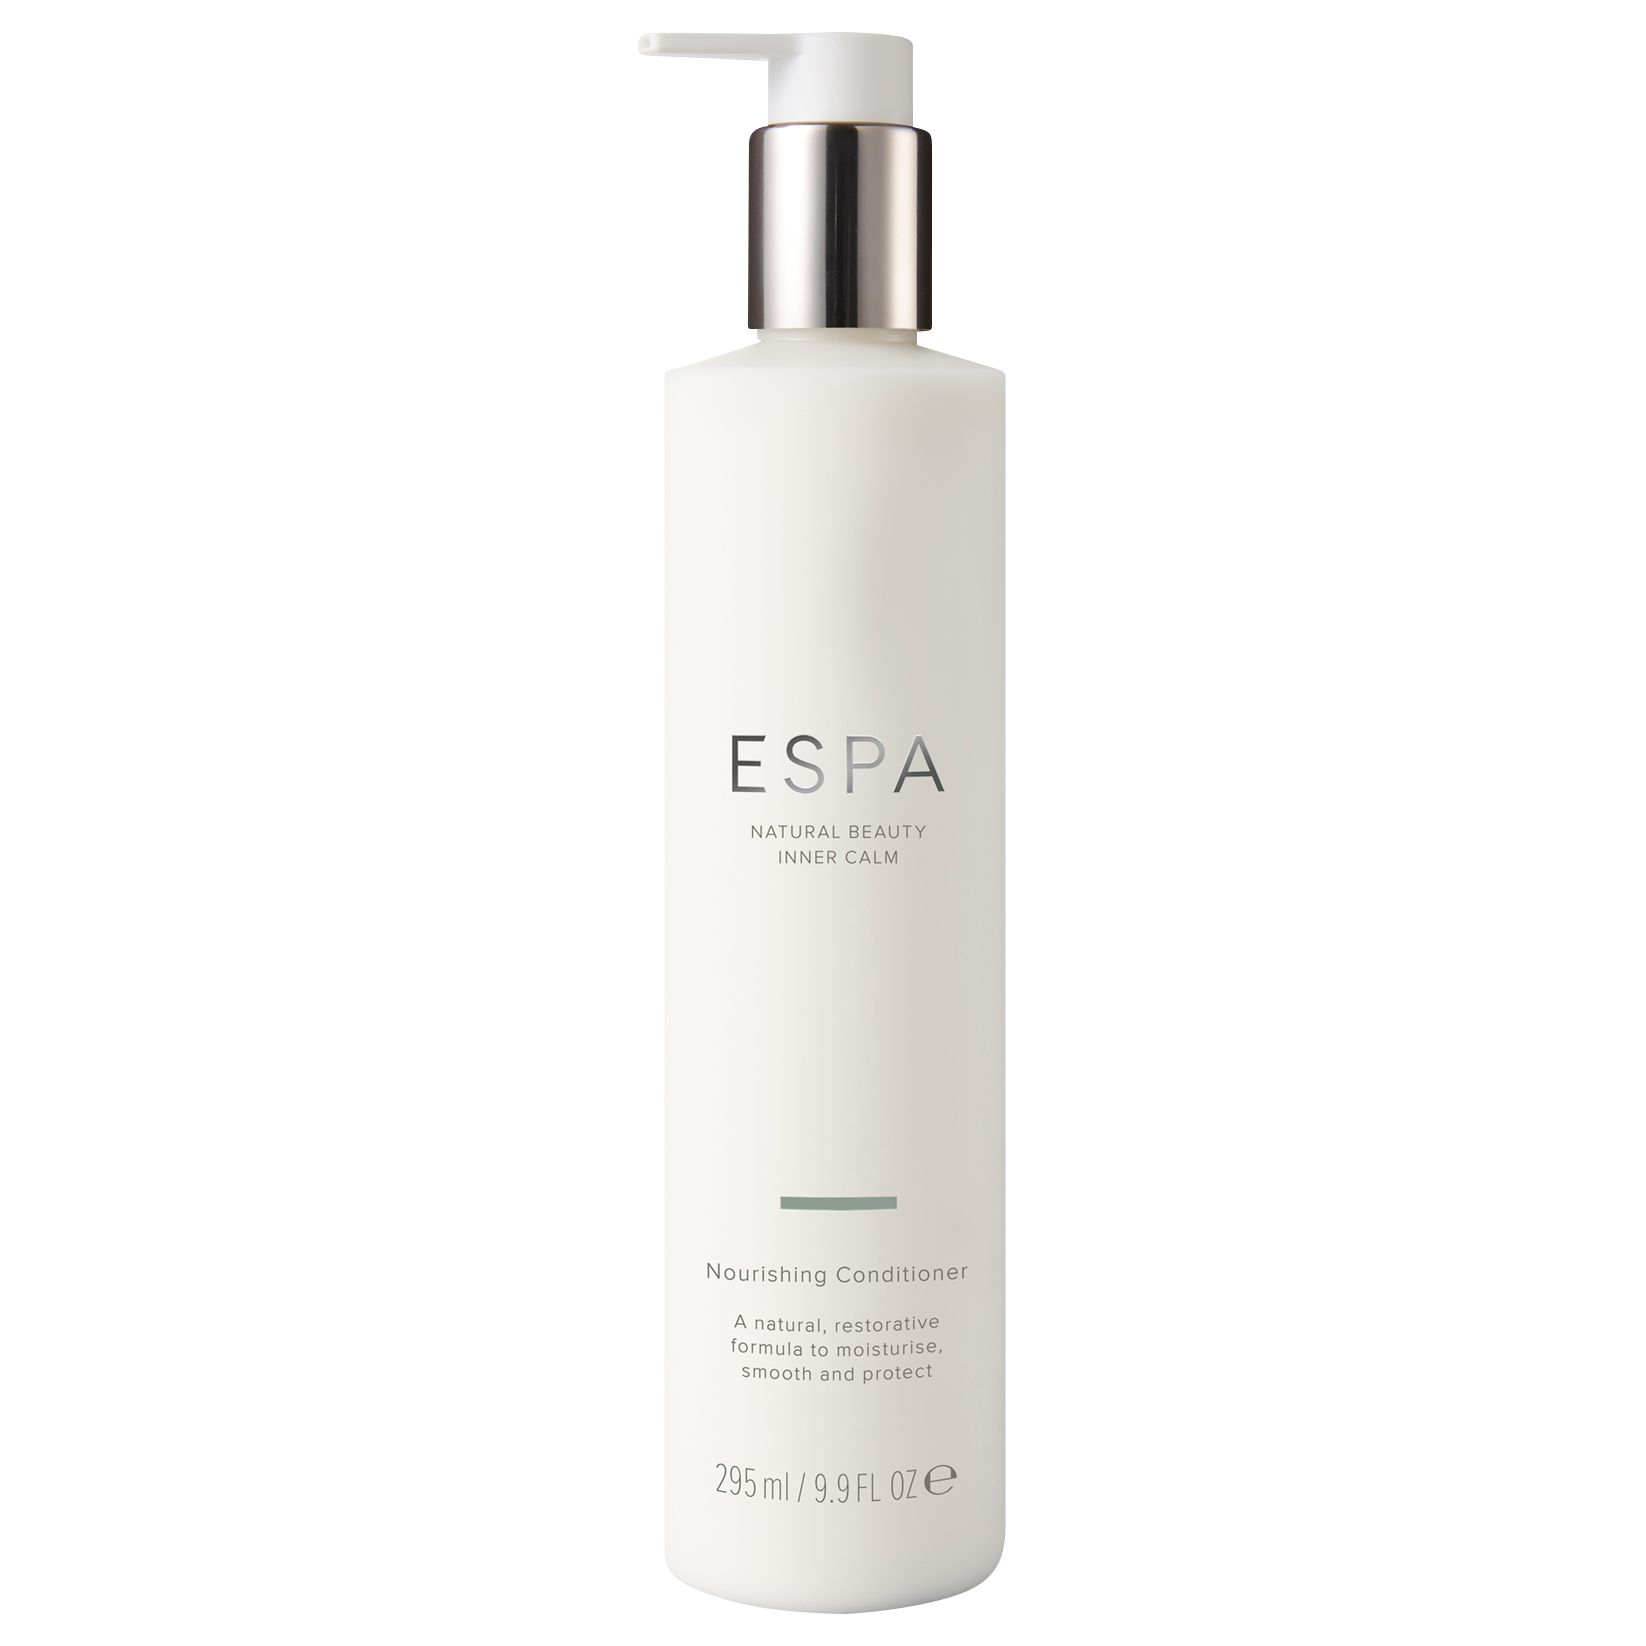 ESPA ESPA Nourishing Conditioner, 300ml